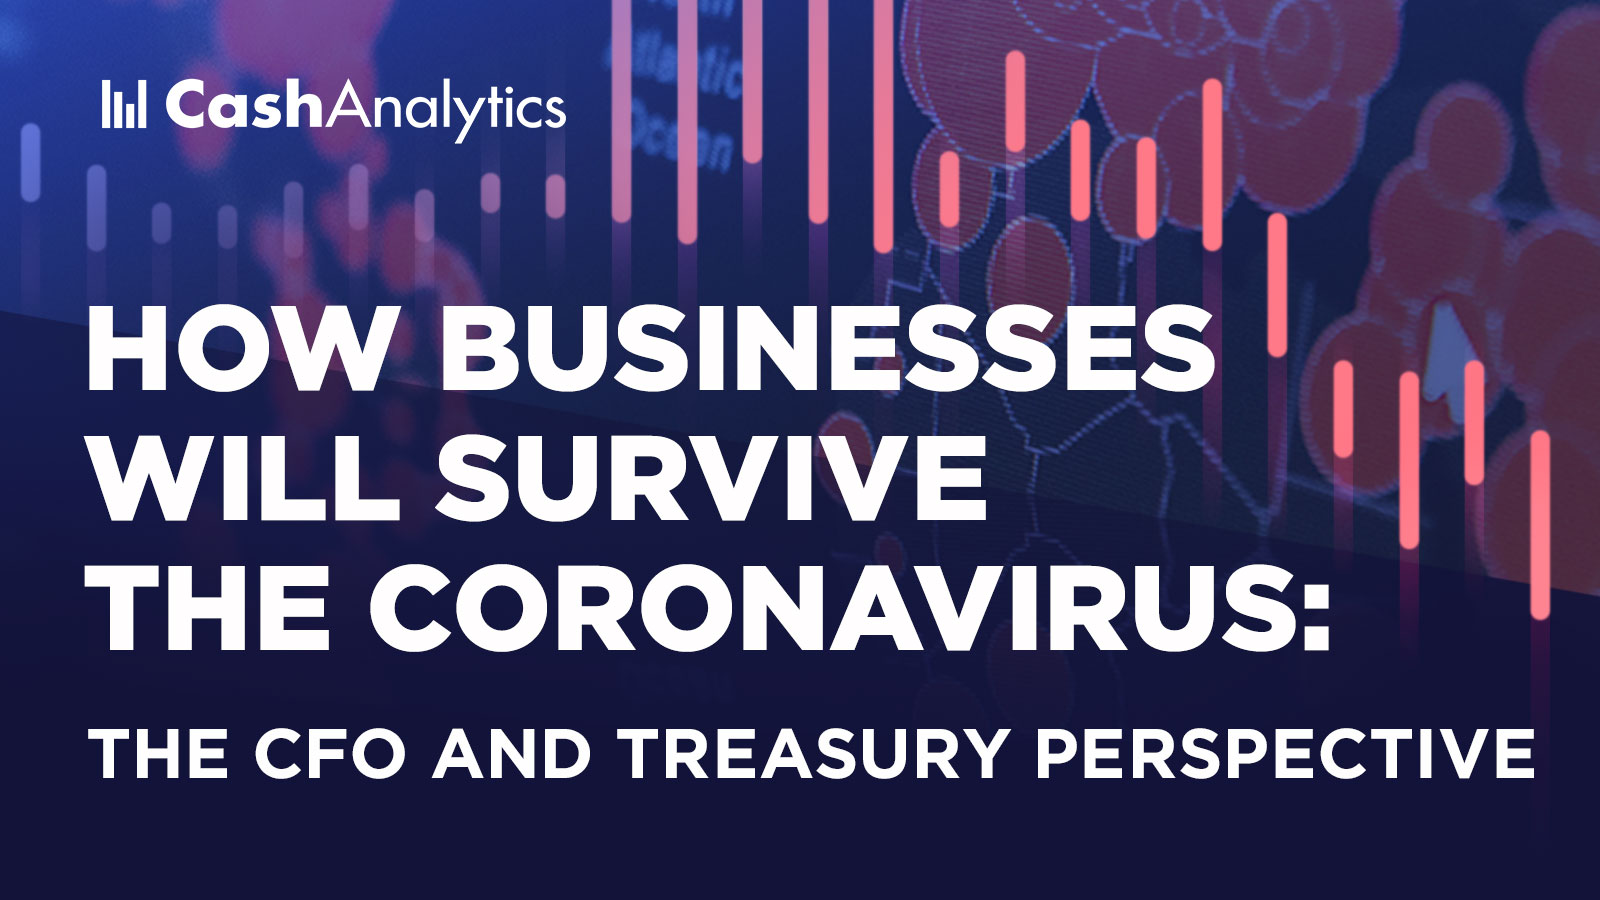 Image for How businesses will survive the Coronavirus: The CFO and treasury perspective